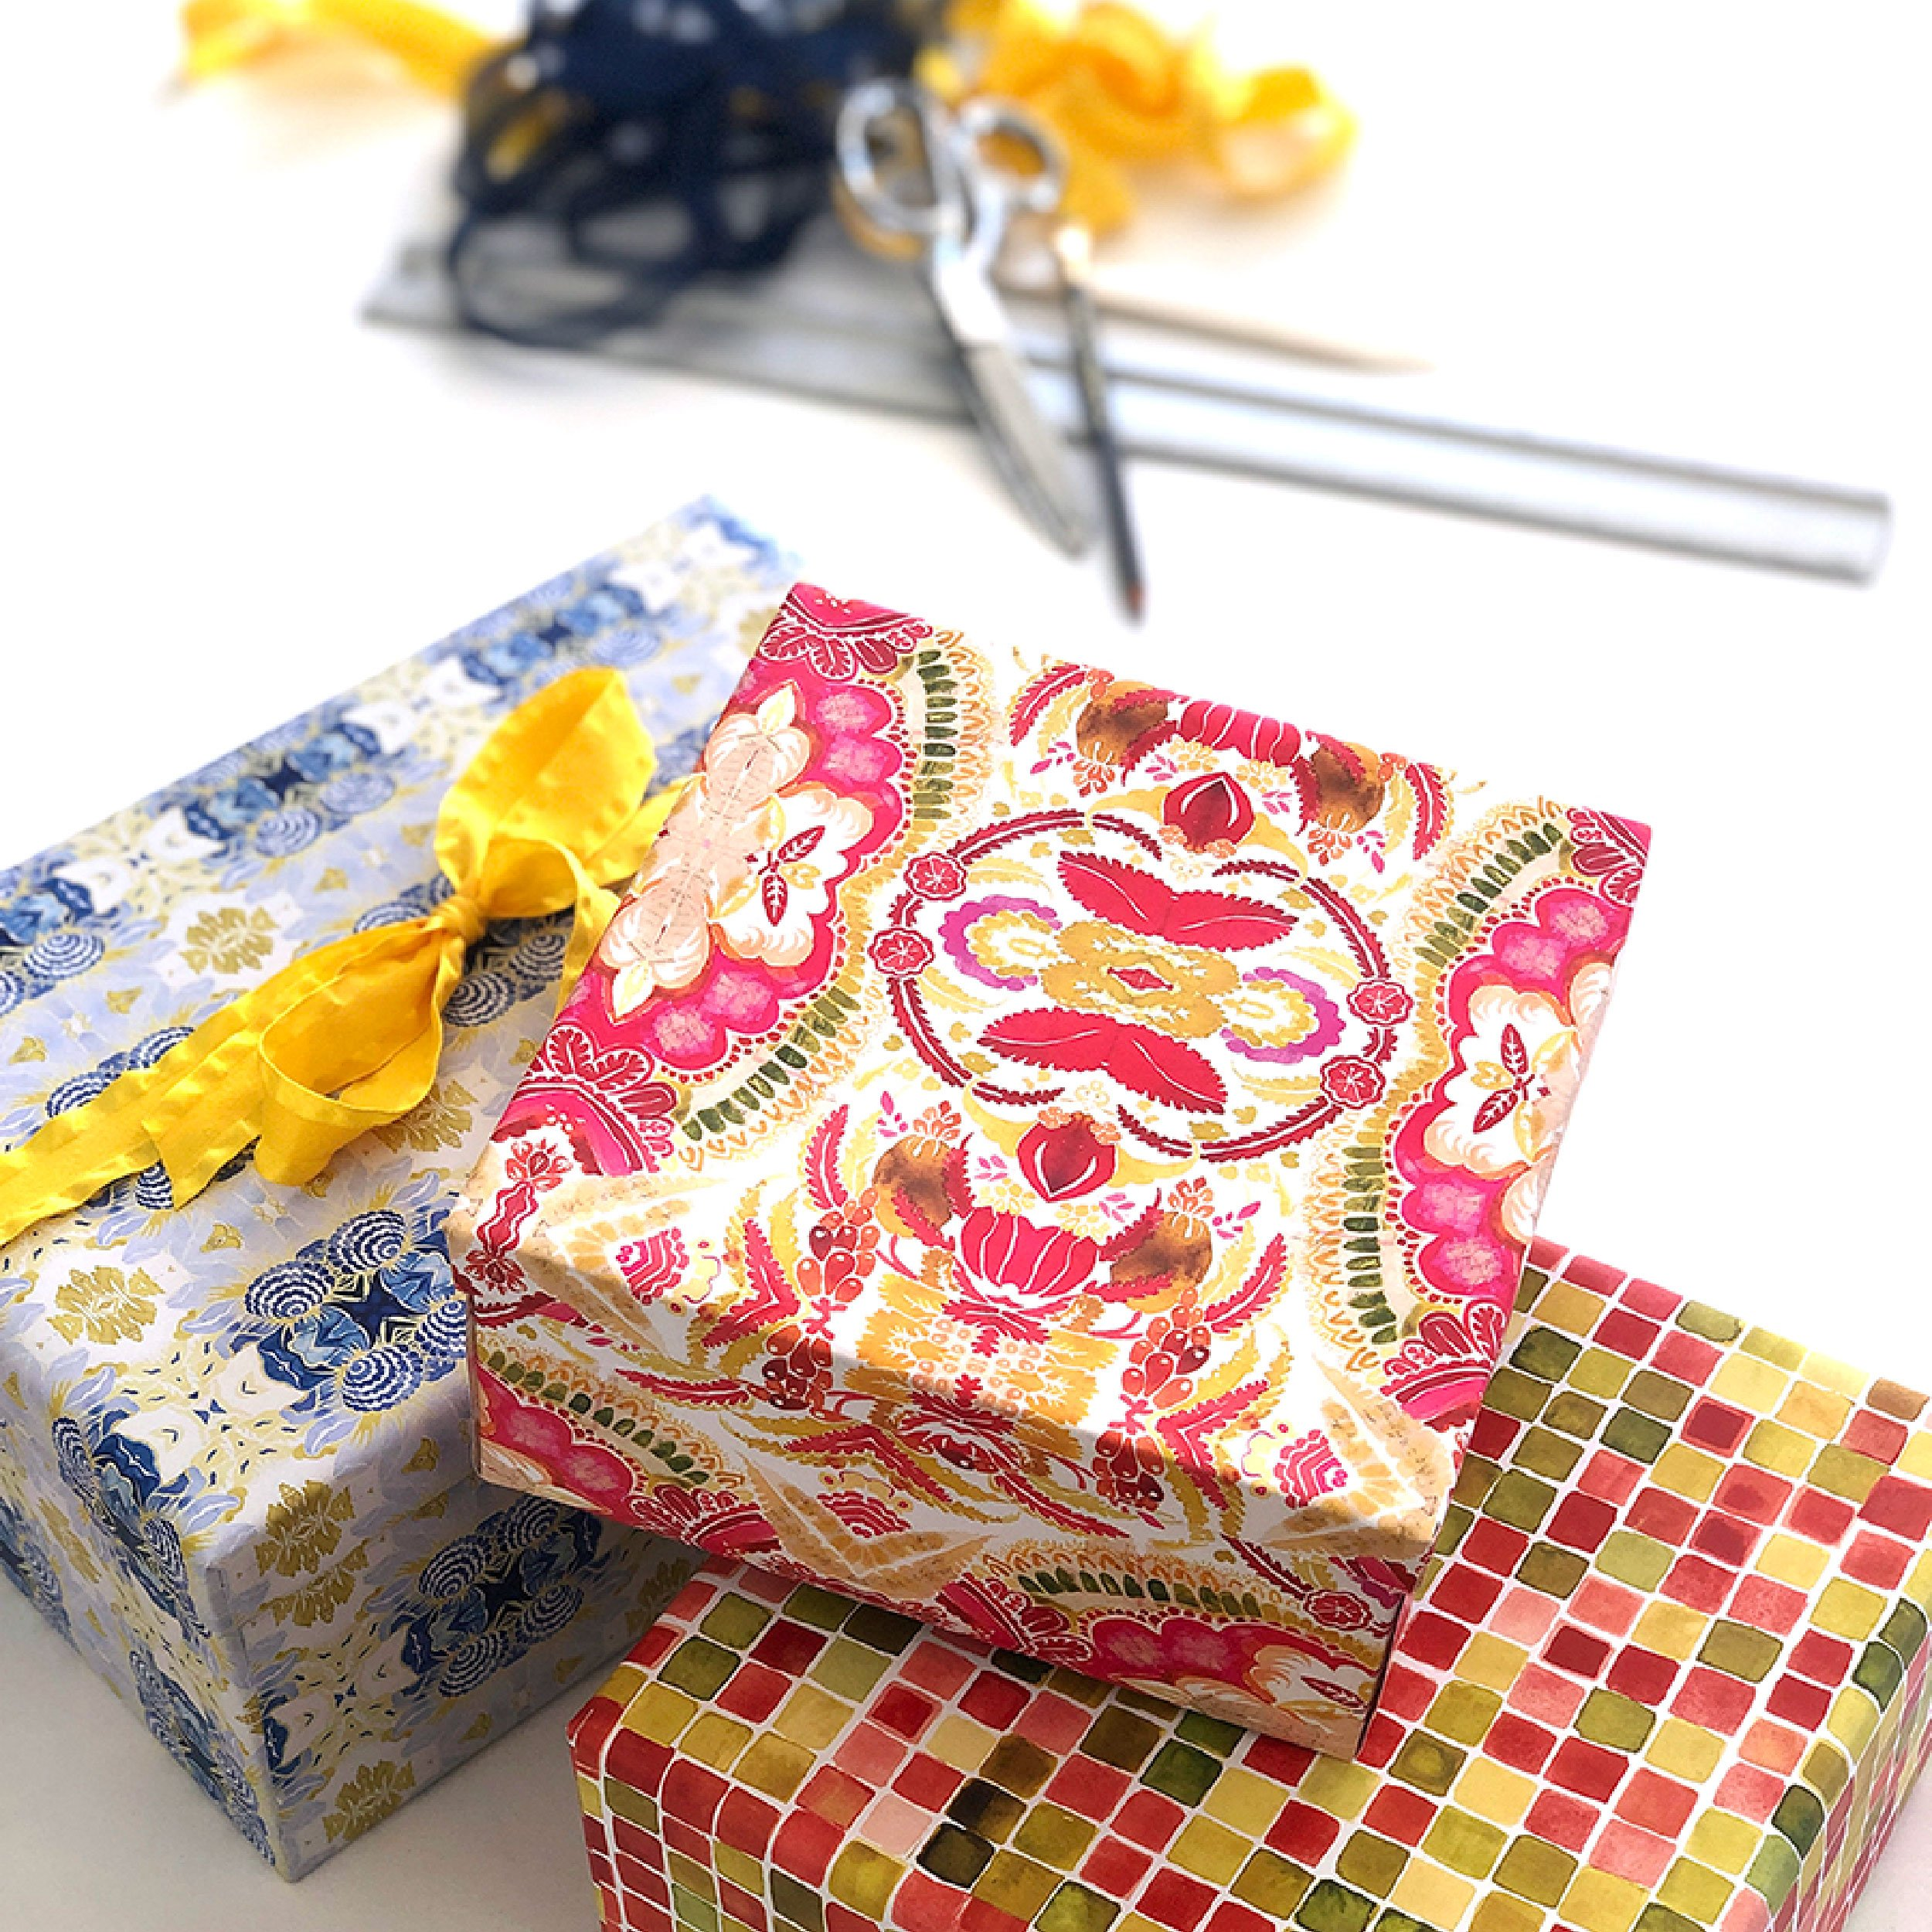 stack of wrapped boxes showing three new wrapping paper designs including a blue and white kaleidoscope design, a red and green square geometric design and a floral pink and green design